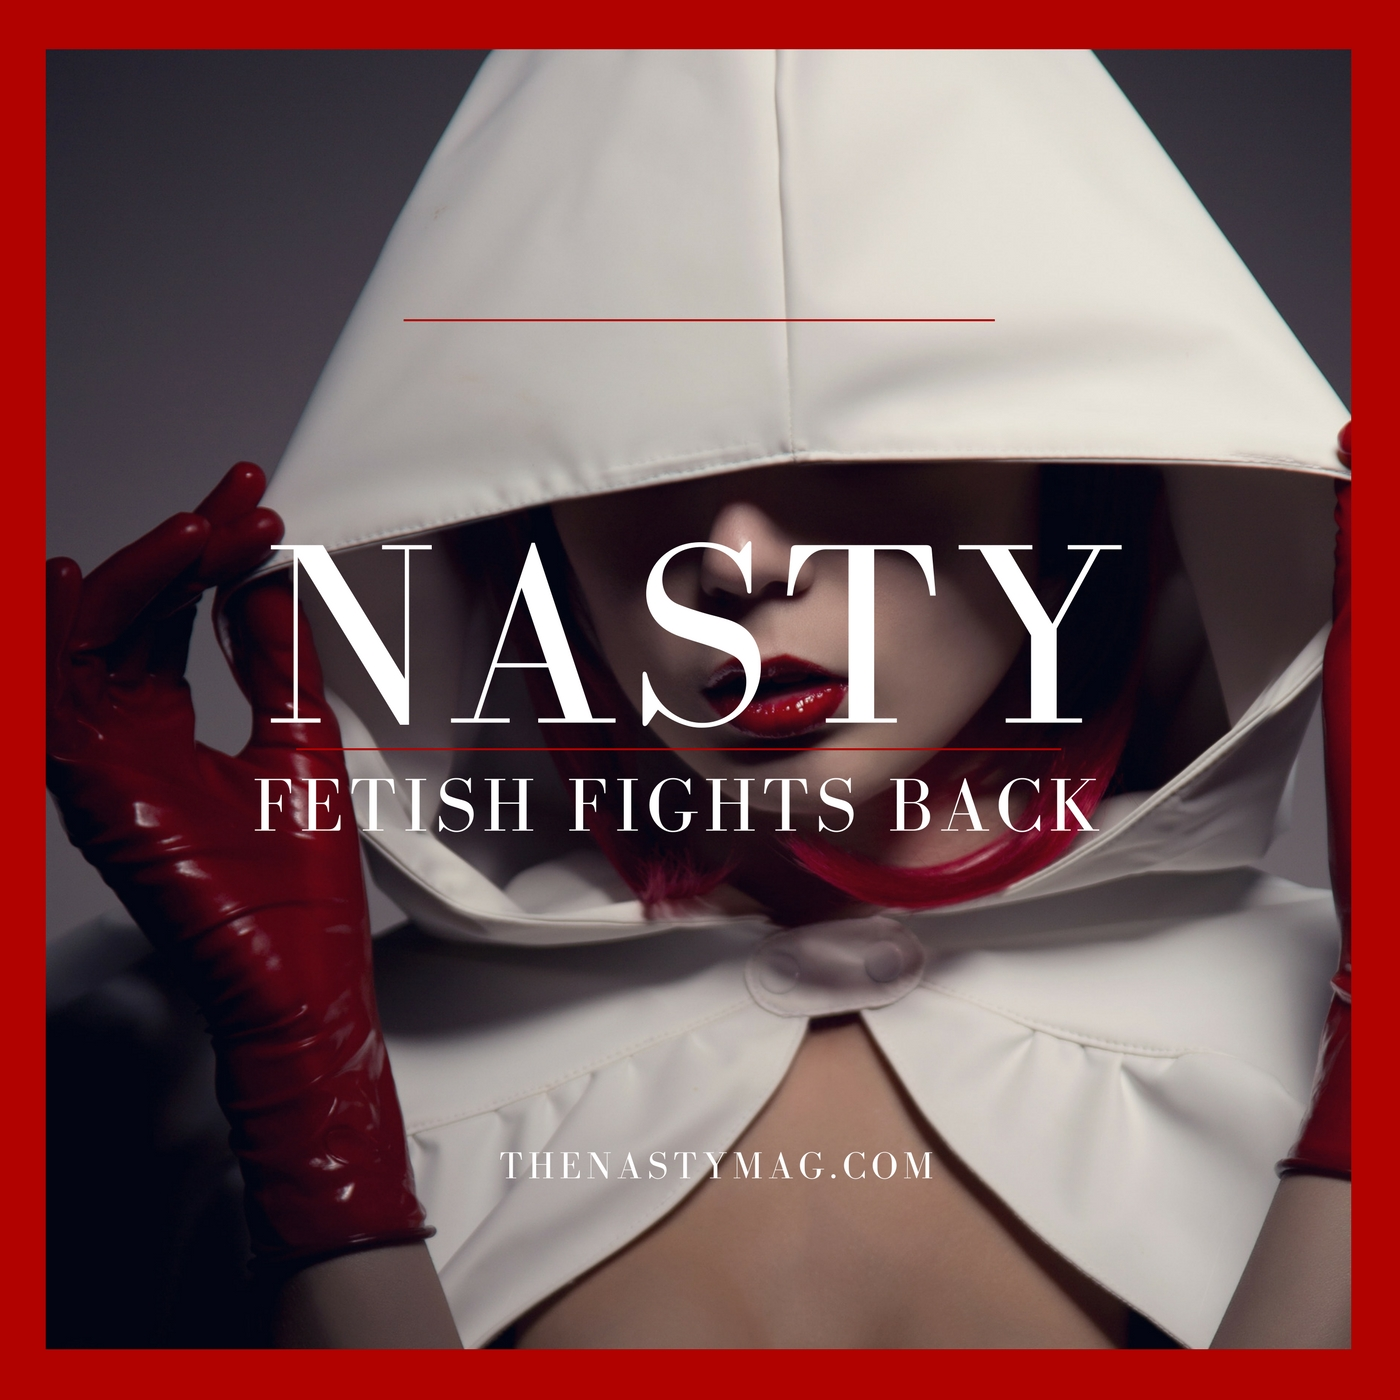 NASTY:Fetish